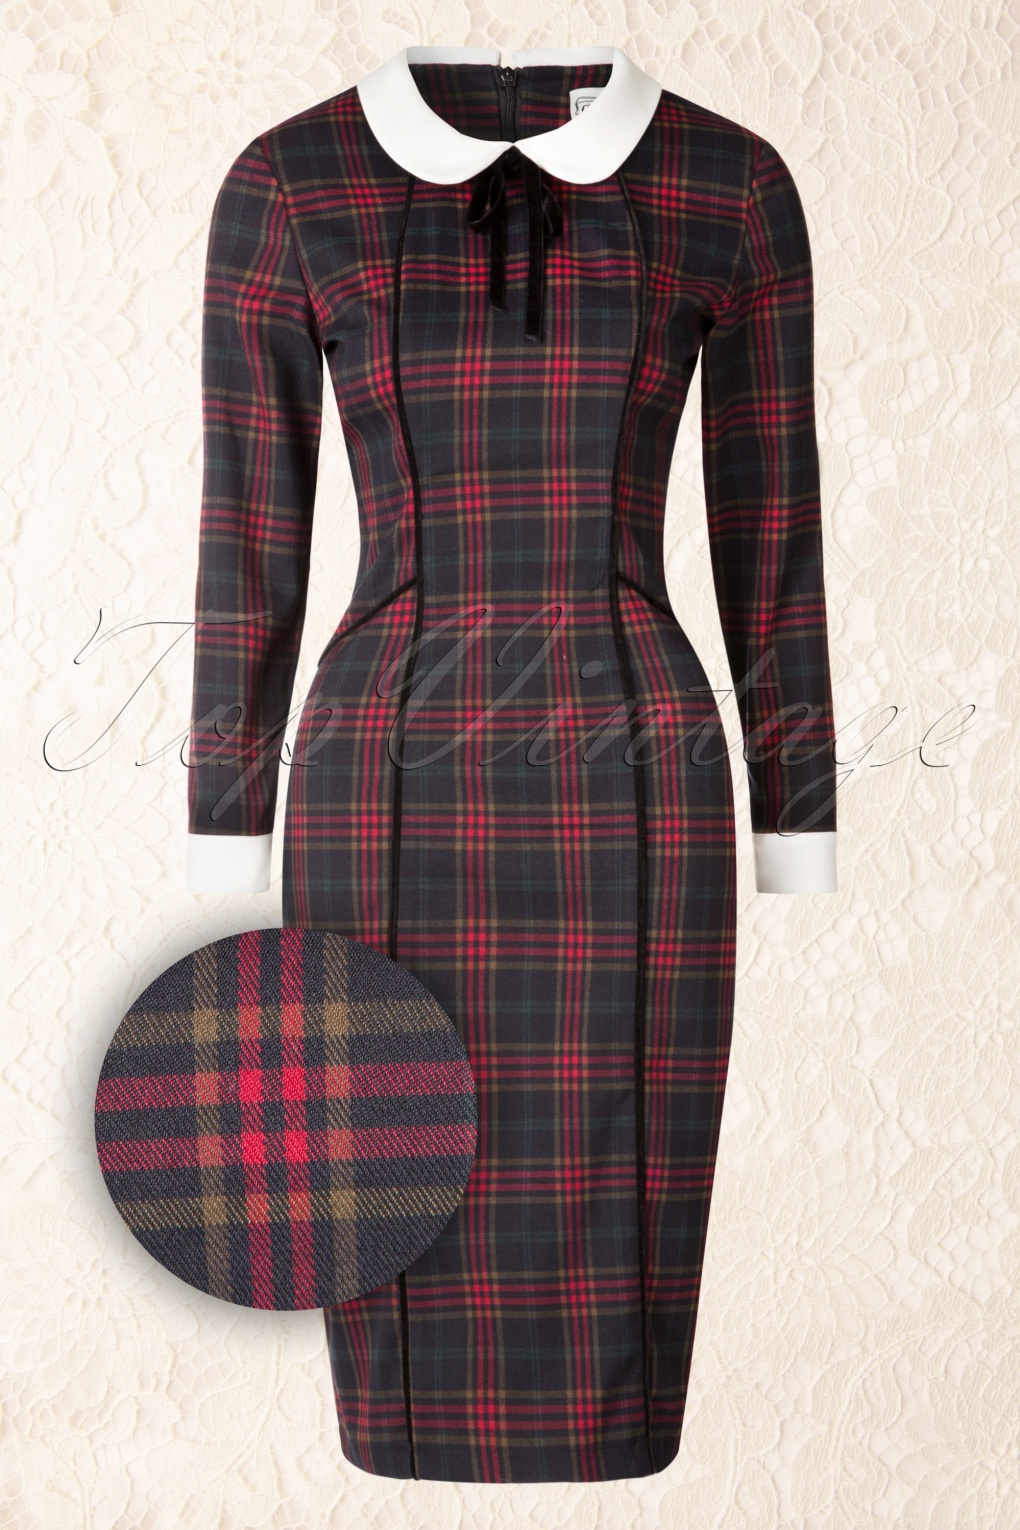 40s Lisa Hanna Check Pencil Dress in Navy and Red